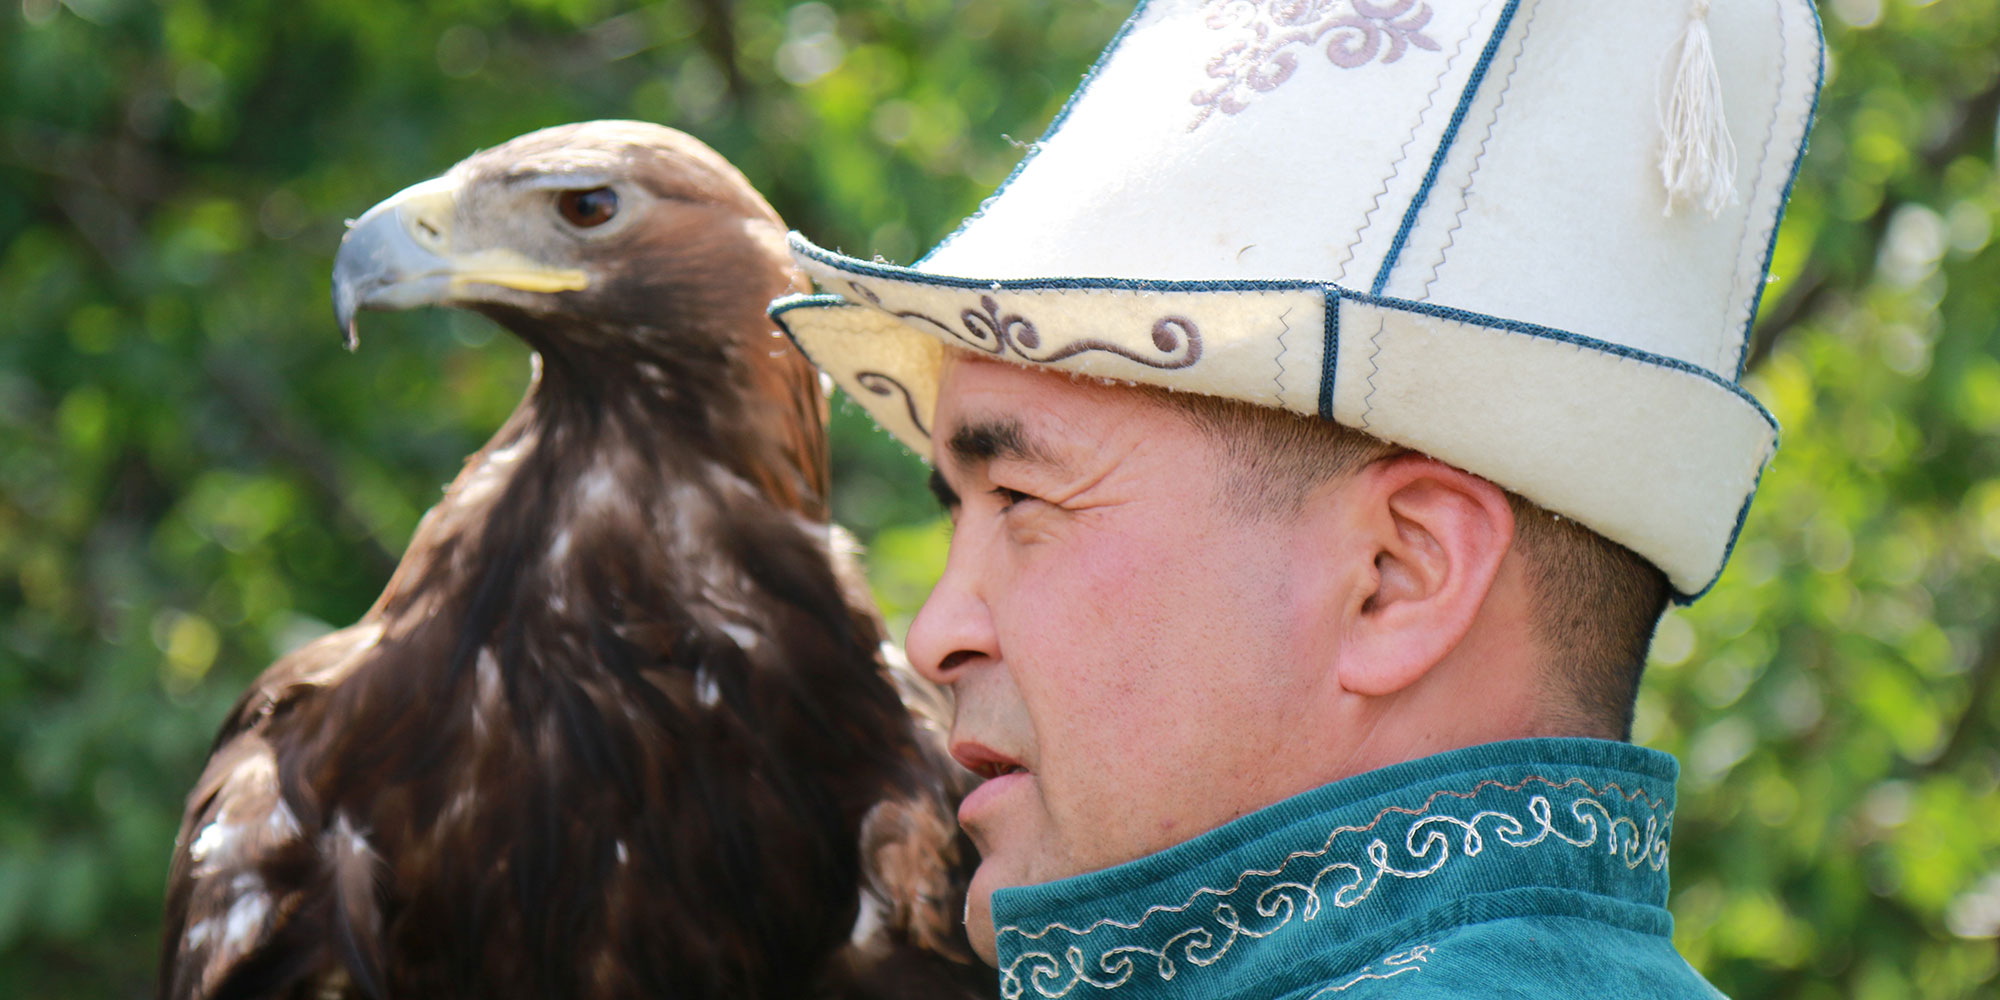 Eaglehunter in Kyrgyzstan